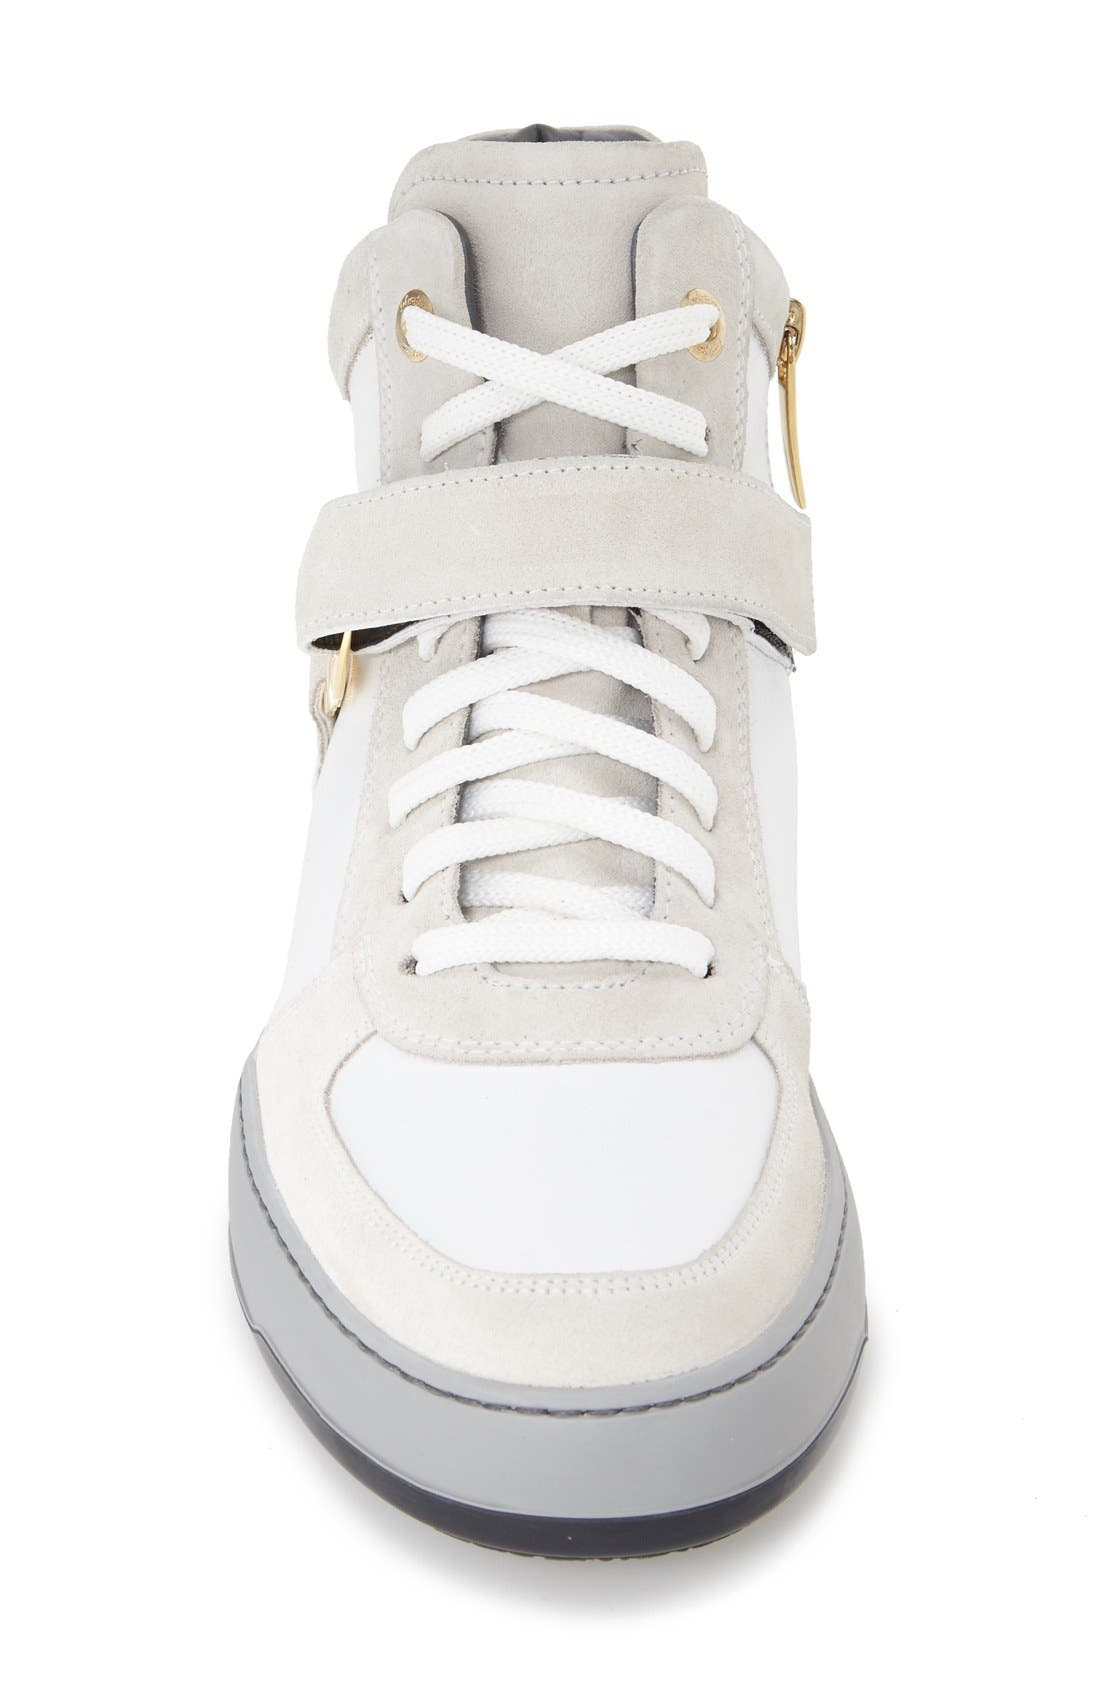 'Nayon' High Top Sneaker,                             Alternate thumbnail 3, color,                             286